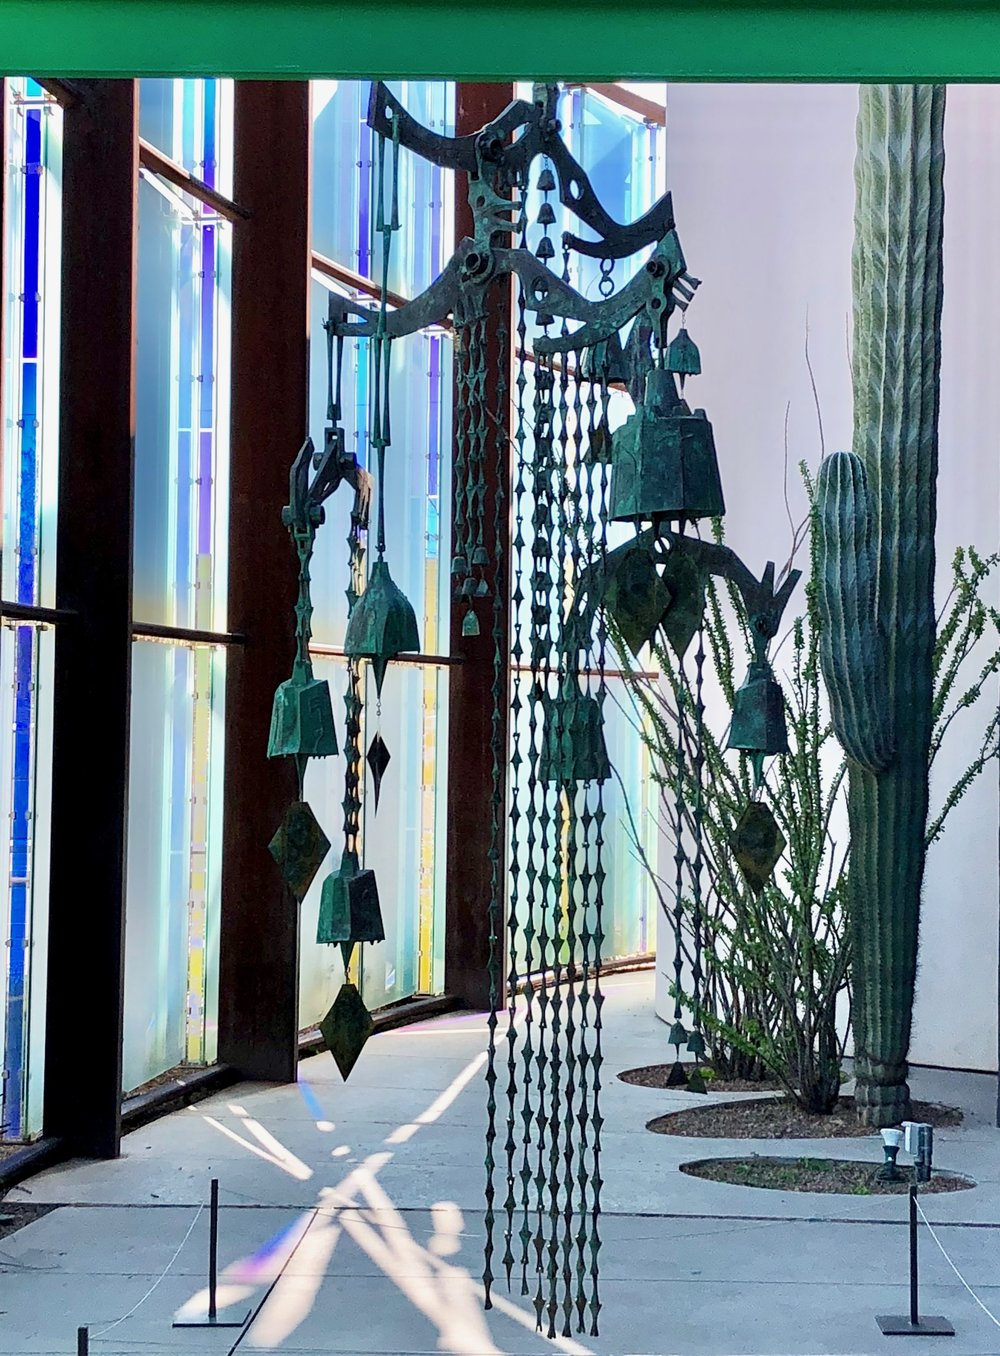 Soleri Bells at SMOCA, Scottsdale